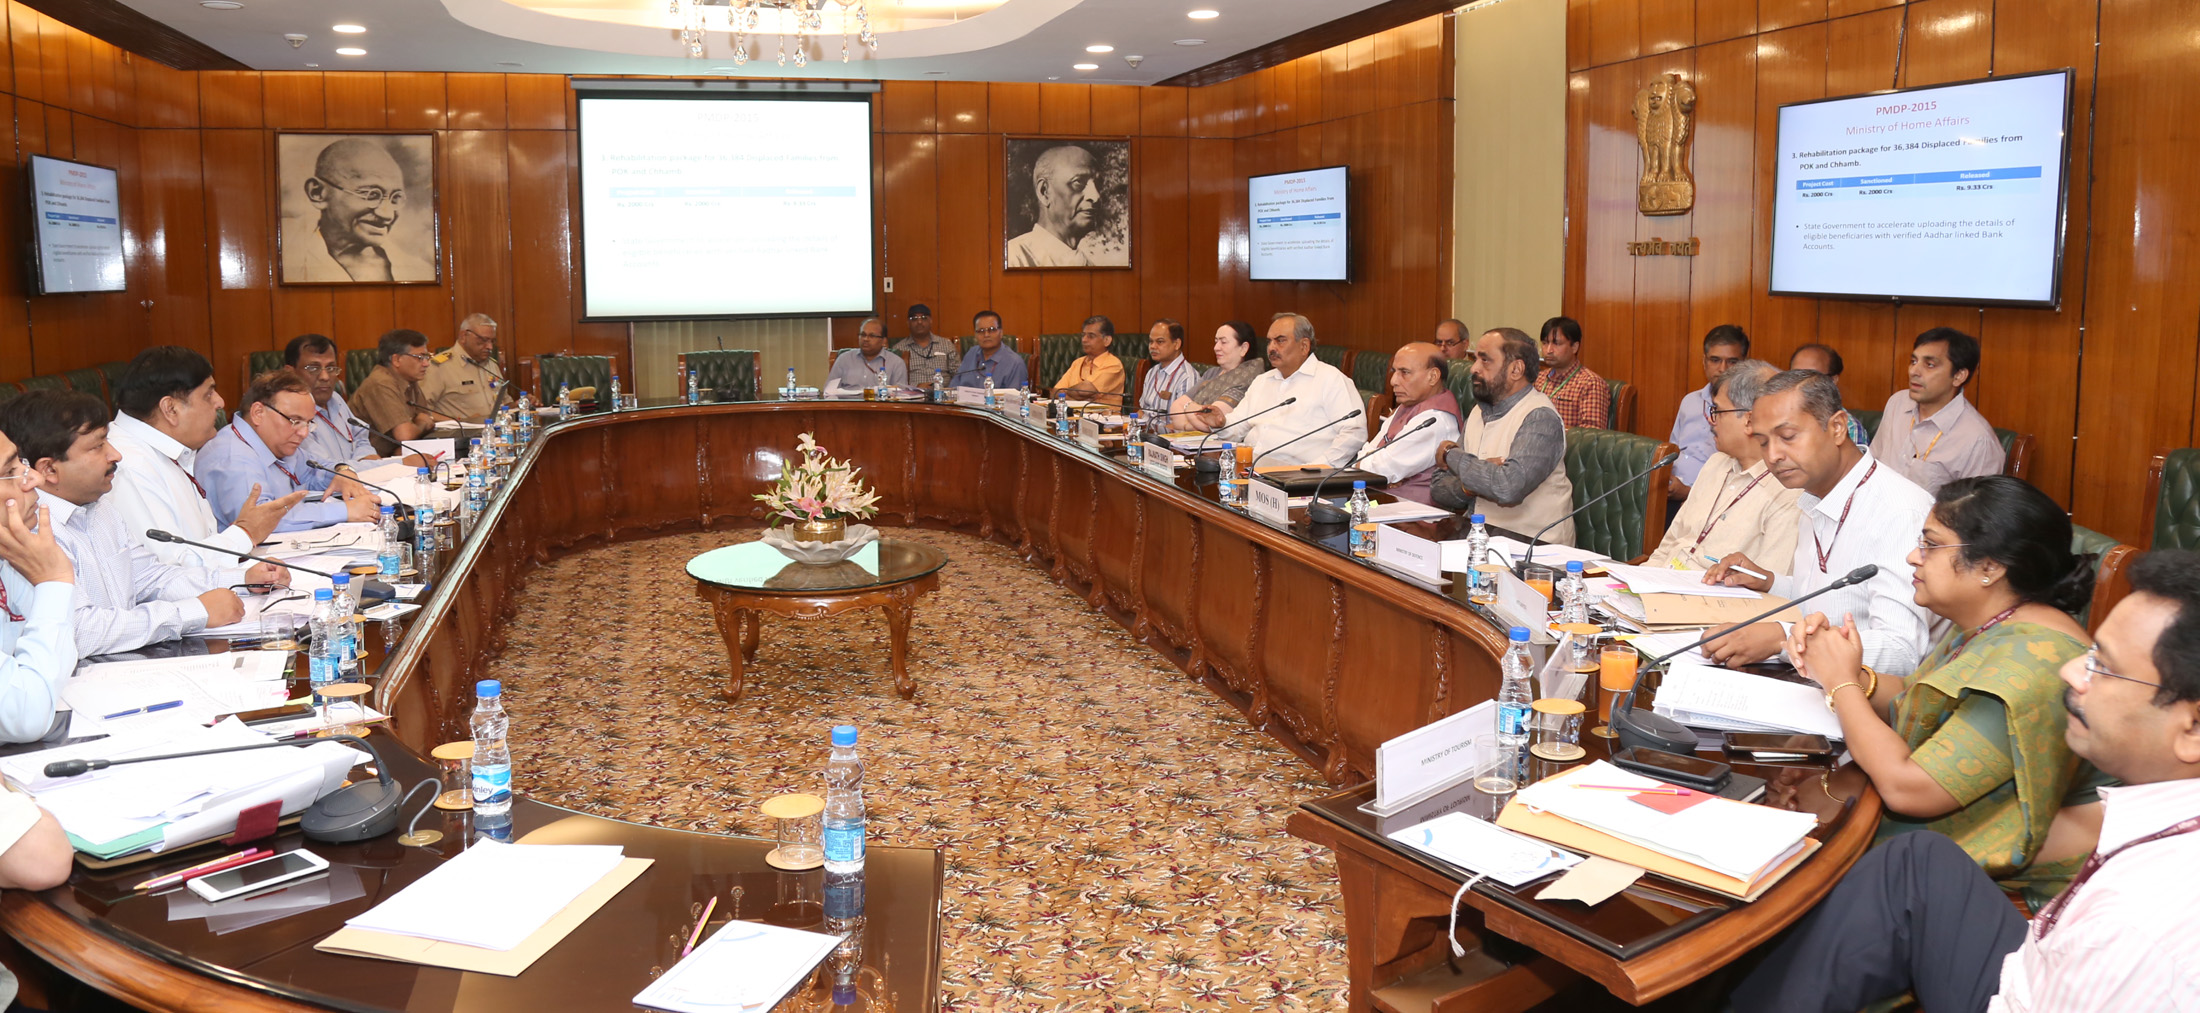 The Union Home Minister, Shri Rajnath Singh chairing a high level meeting to review the progress of Prime Minister's Development Package (PMDP-2015) for Jammu and Kashmir, in New Delhi on April 27, 2017. 	The Minister of State for Home Affairs, Shri Hansraj Gangaram Ahir, the Union Home Secretary, Shri Rajiv Mehrishi and Senior Officers from J&K and other Central Ministries are also seen.